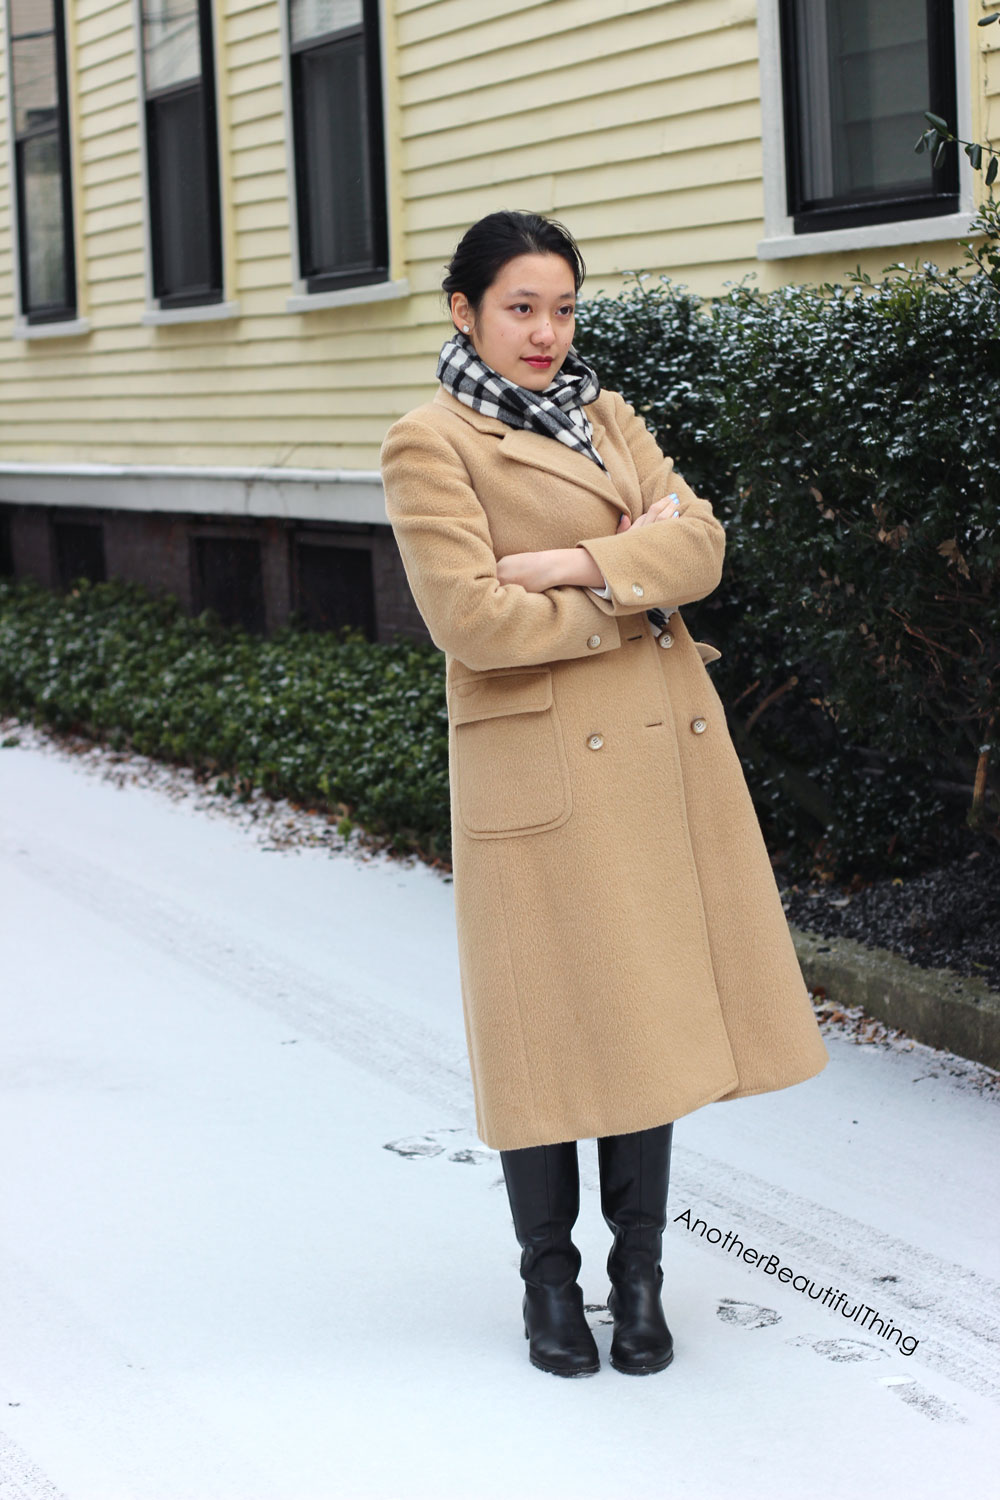 Long knee length camel coat and black and white checked scarf